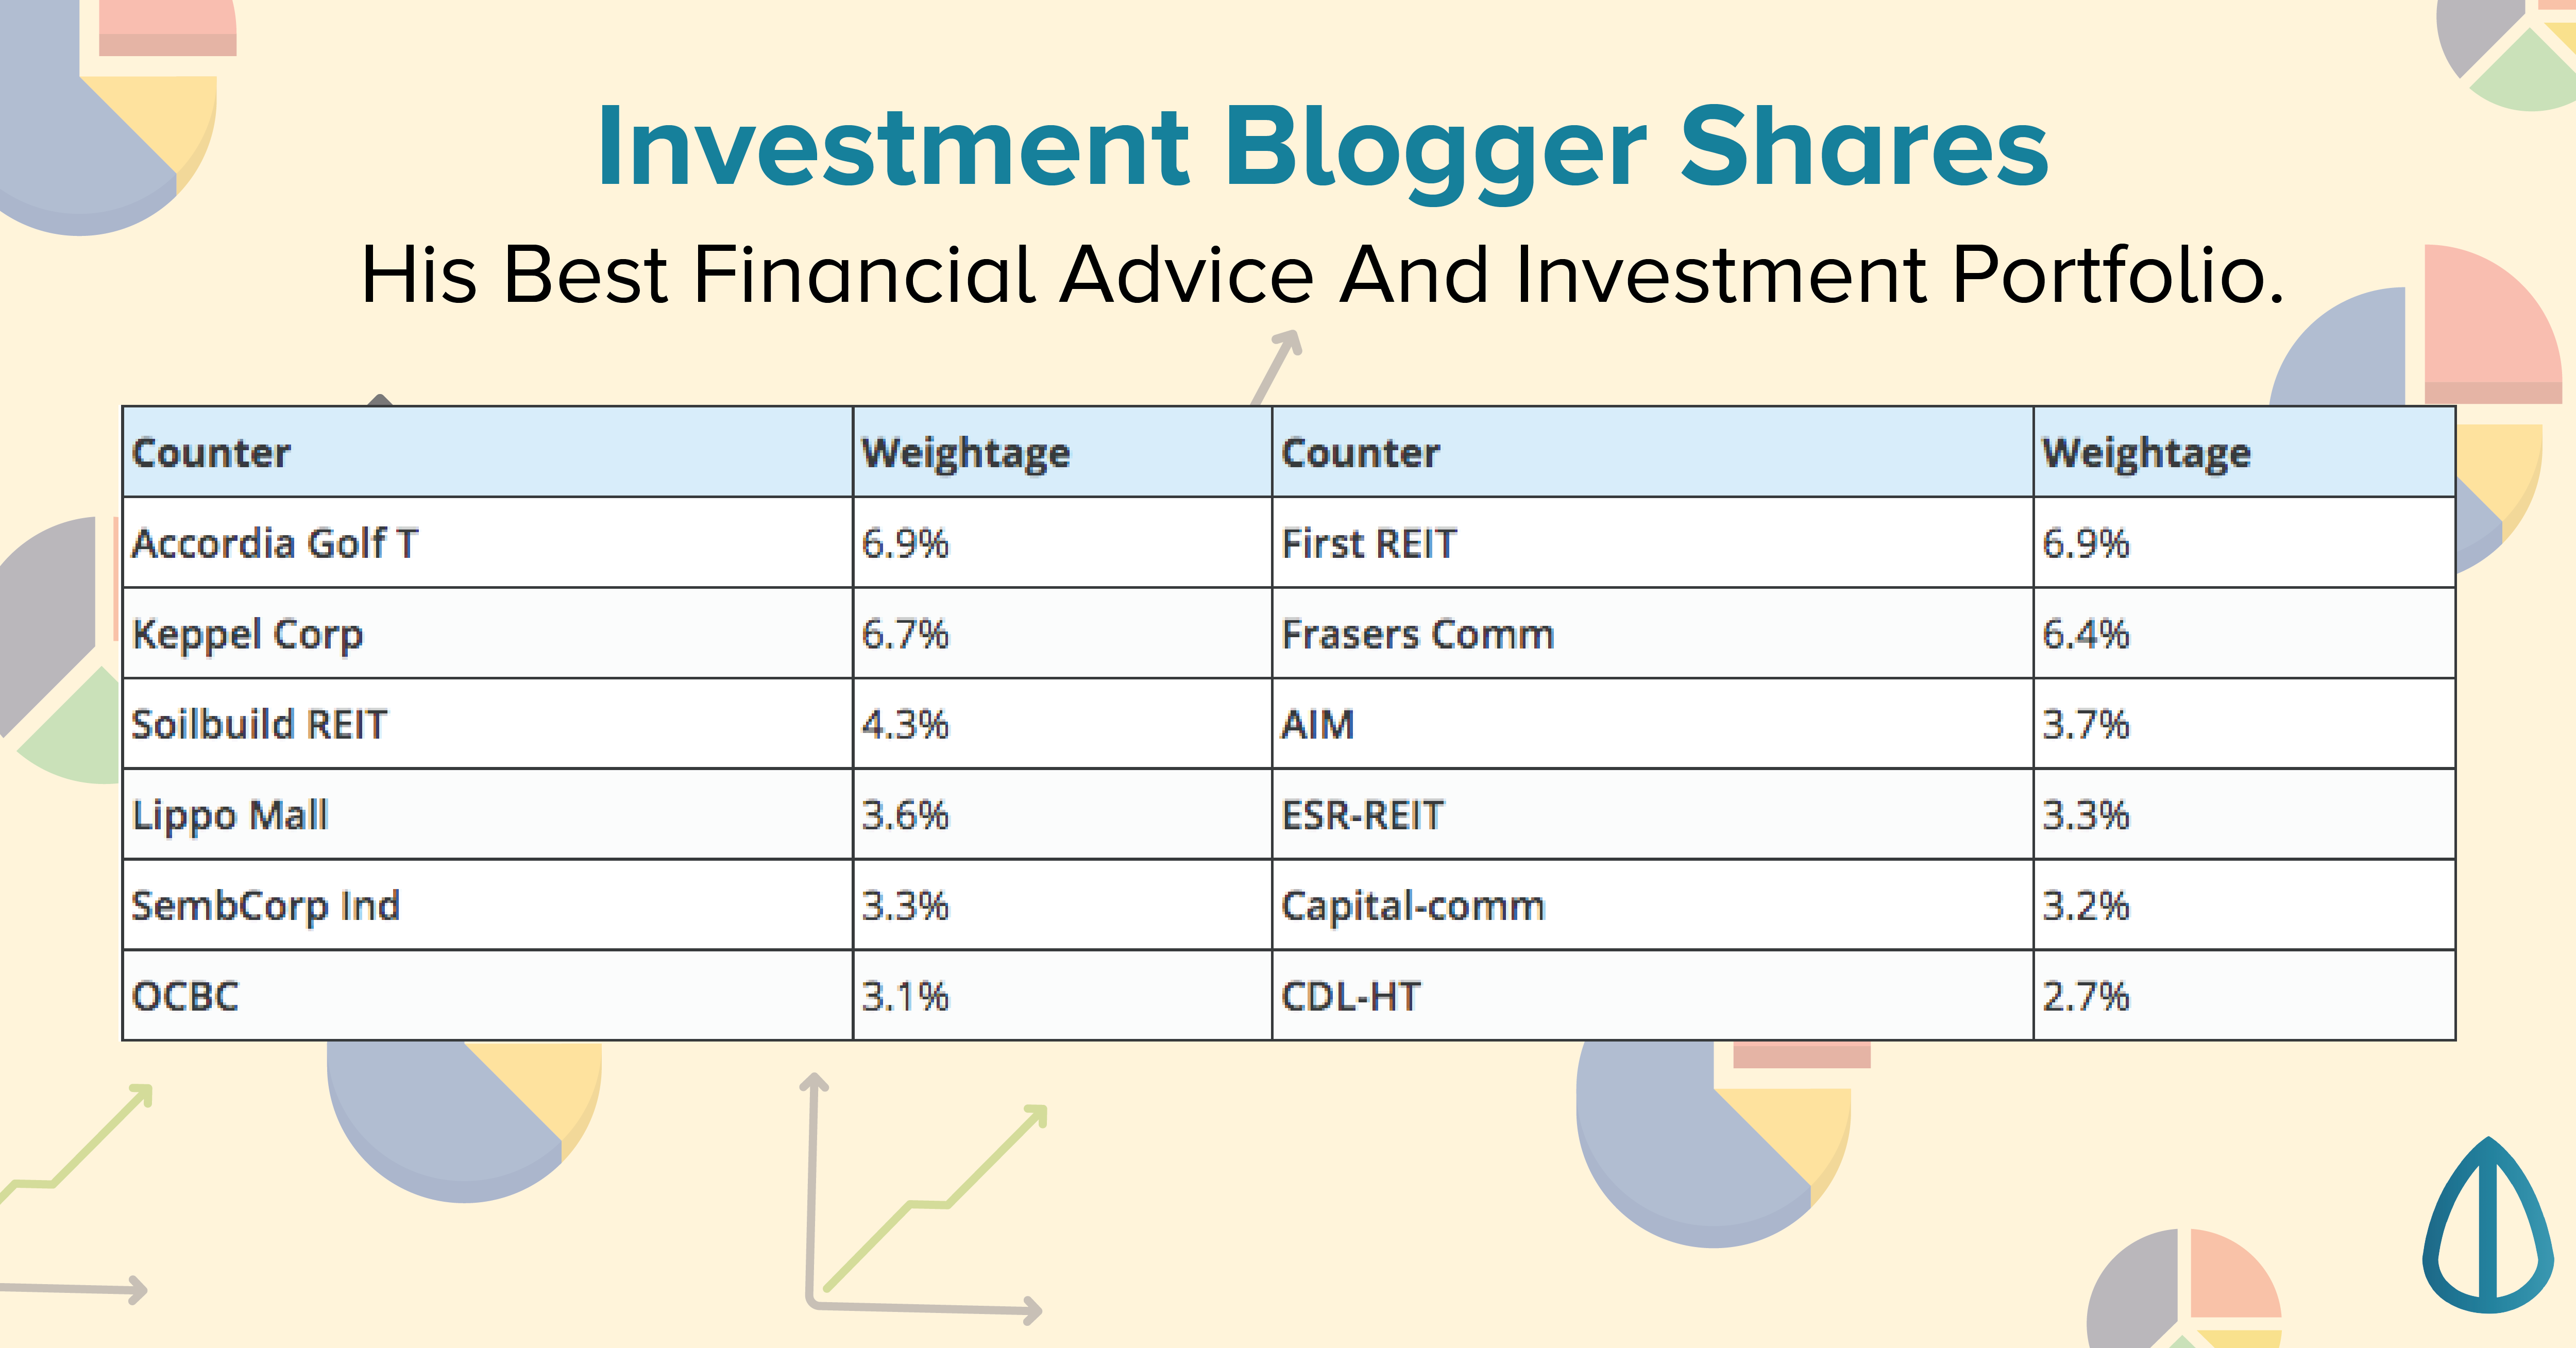 Investment Blogger Shares His Best Financial Advice And Investment Portfolio – STE's Stocks Investing